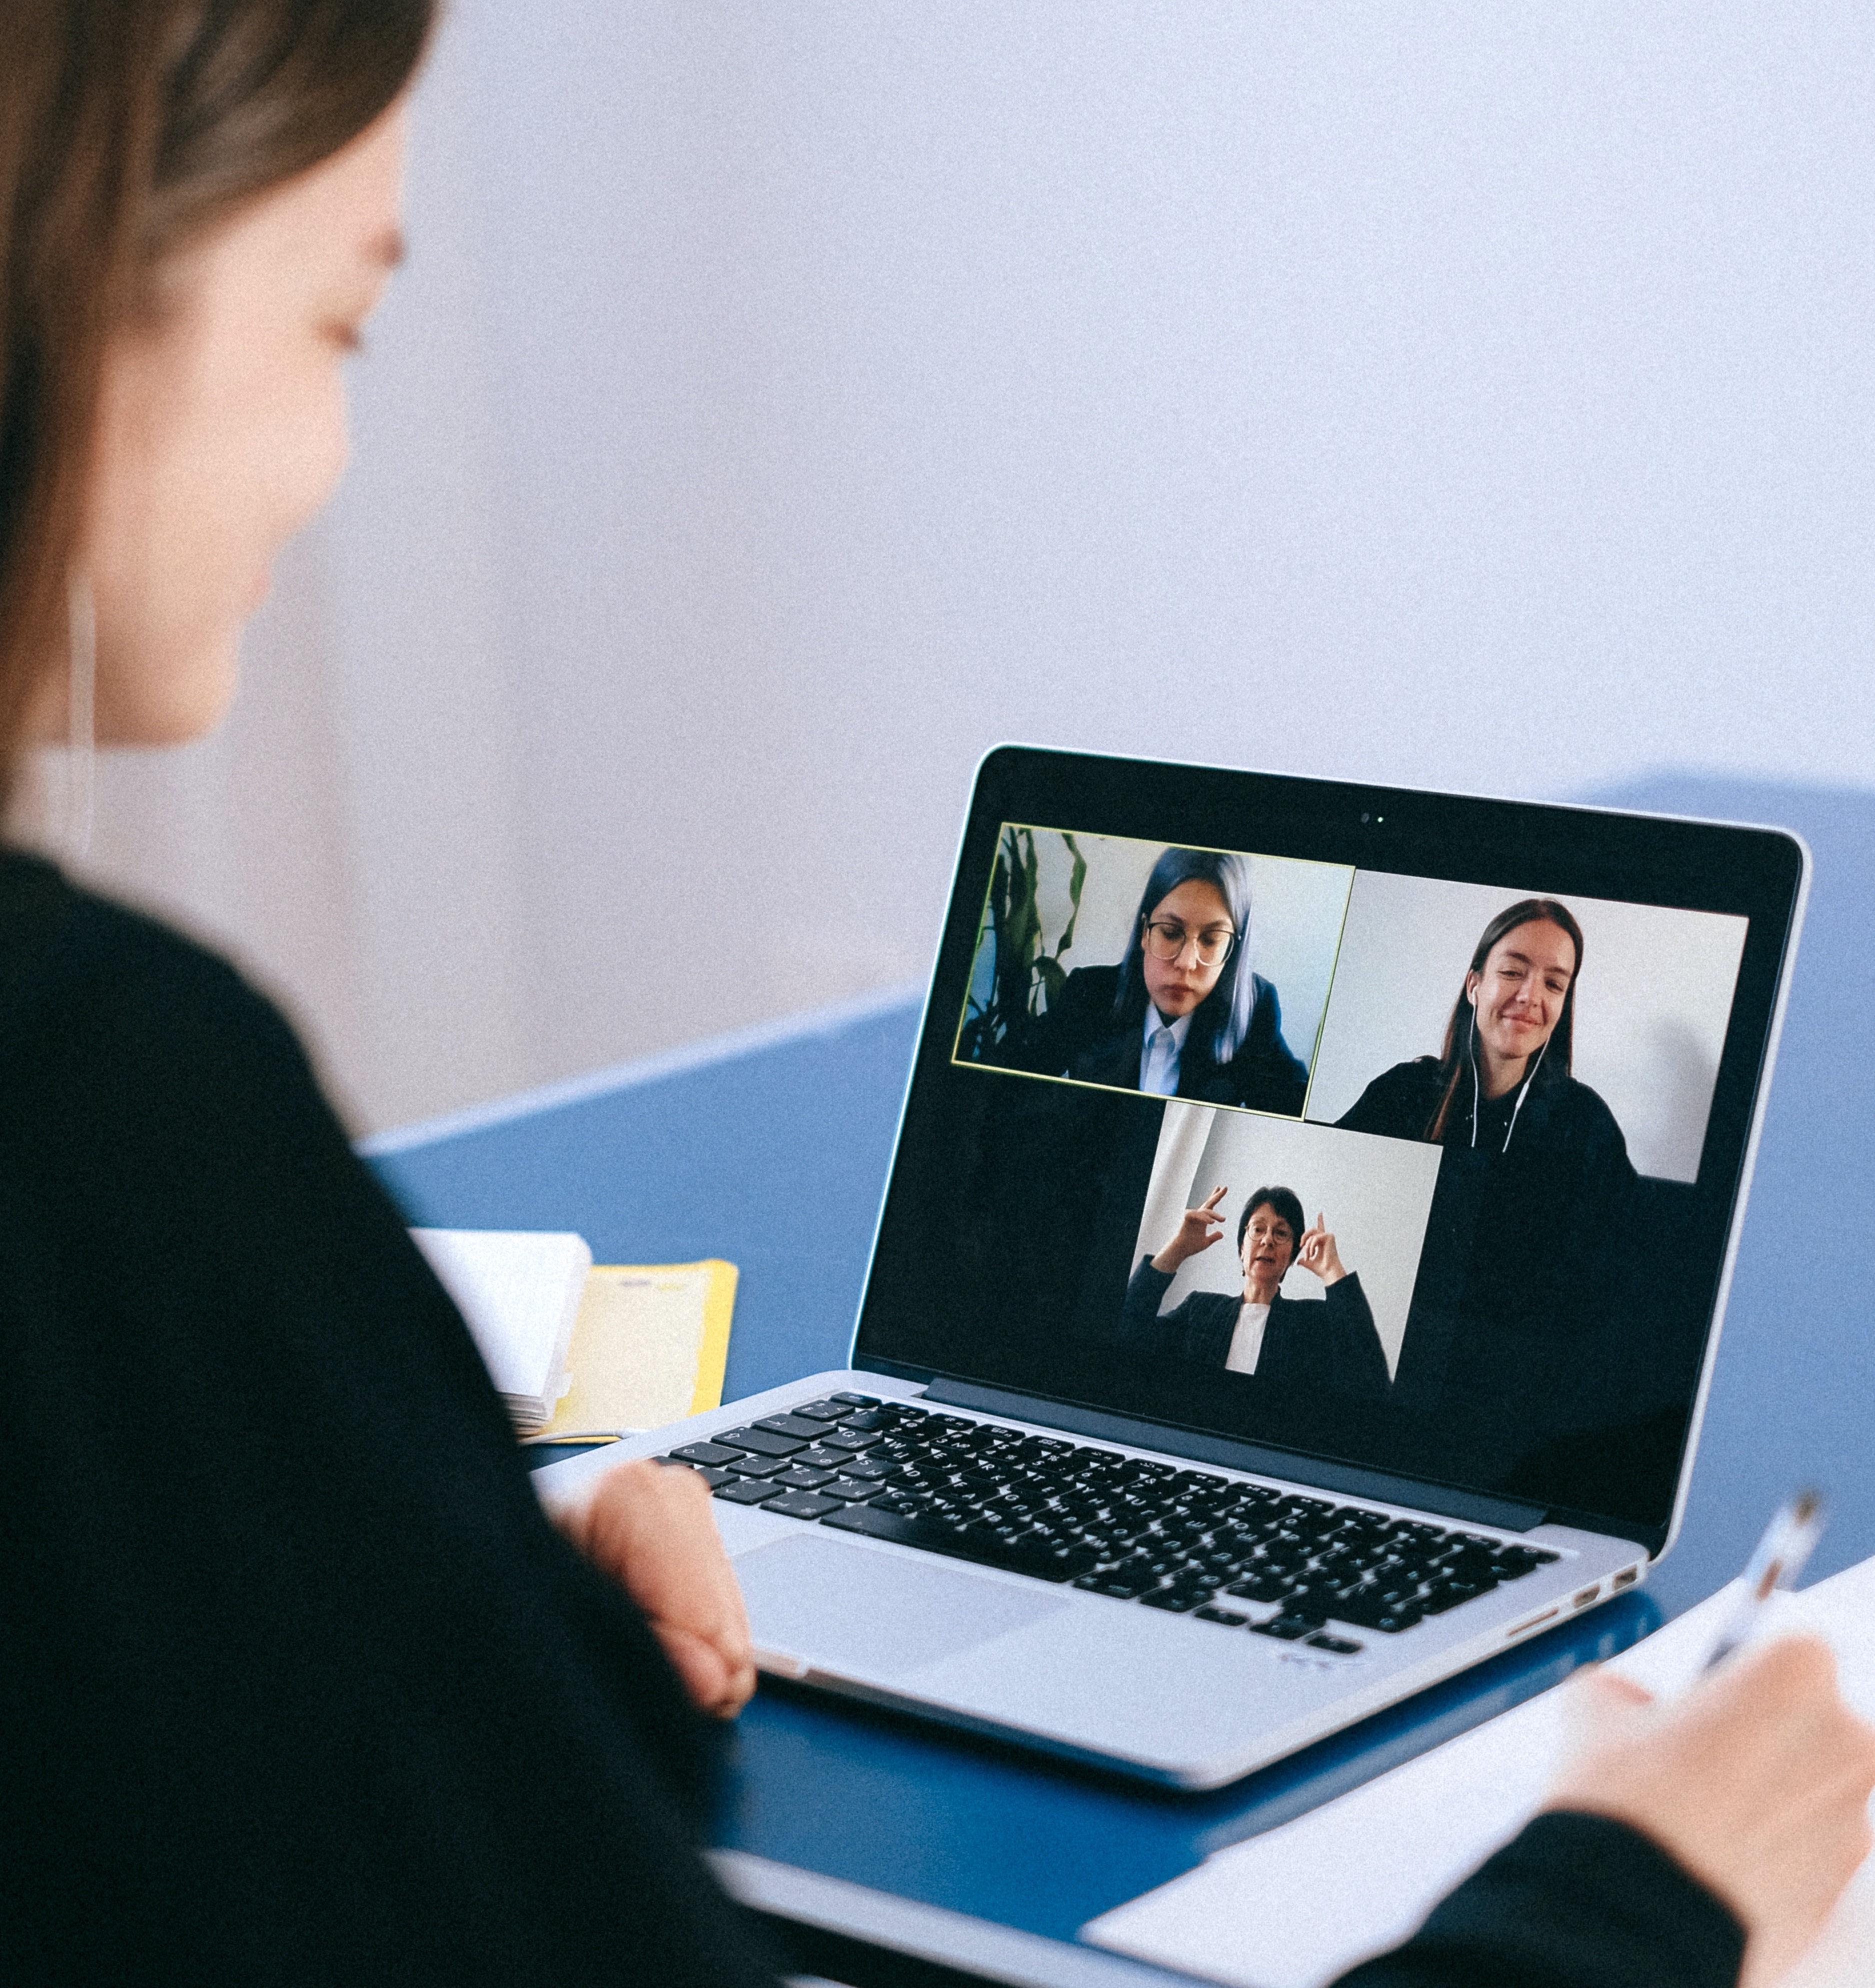 Woman on video call interview